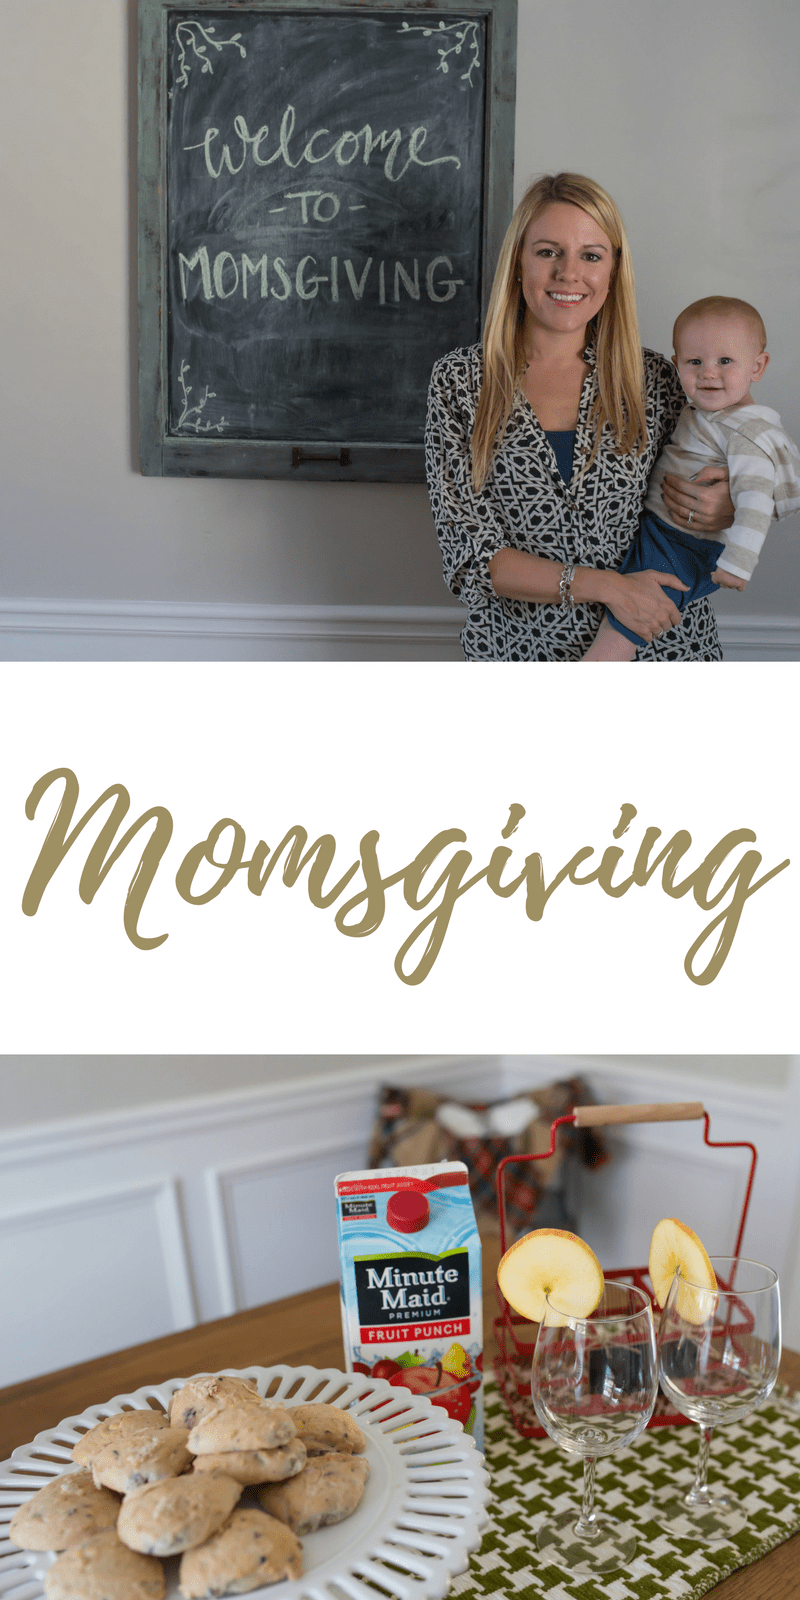 a great momsgiving celebration - thanksgiving to uplift and inspire moms!